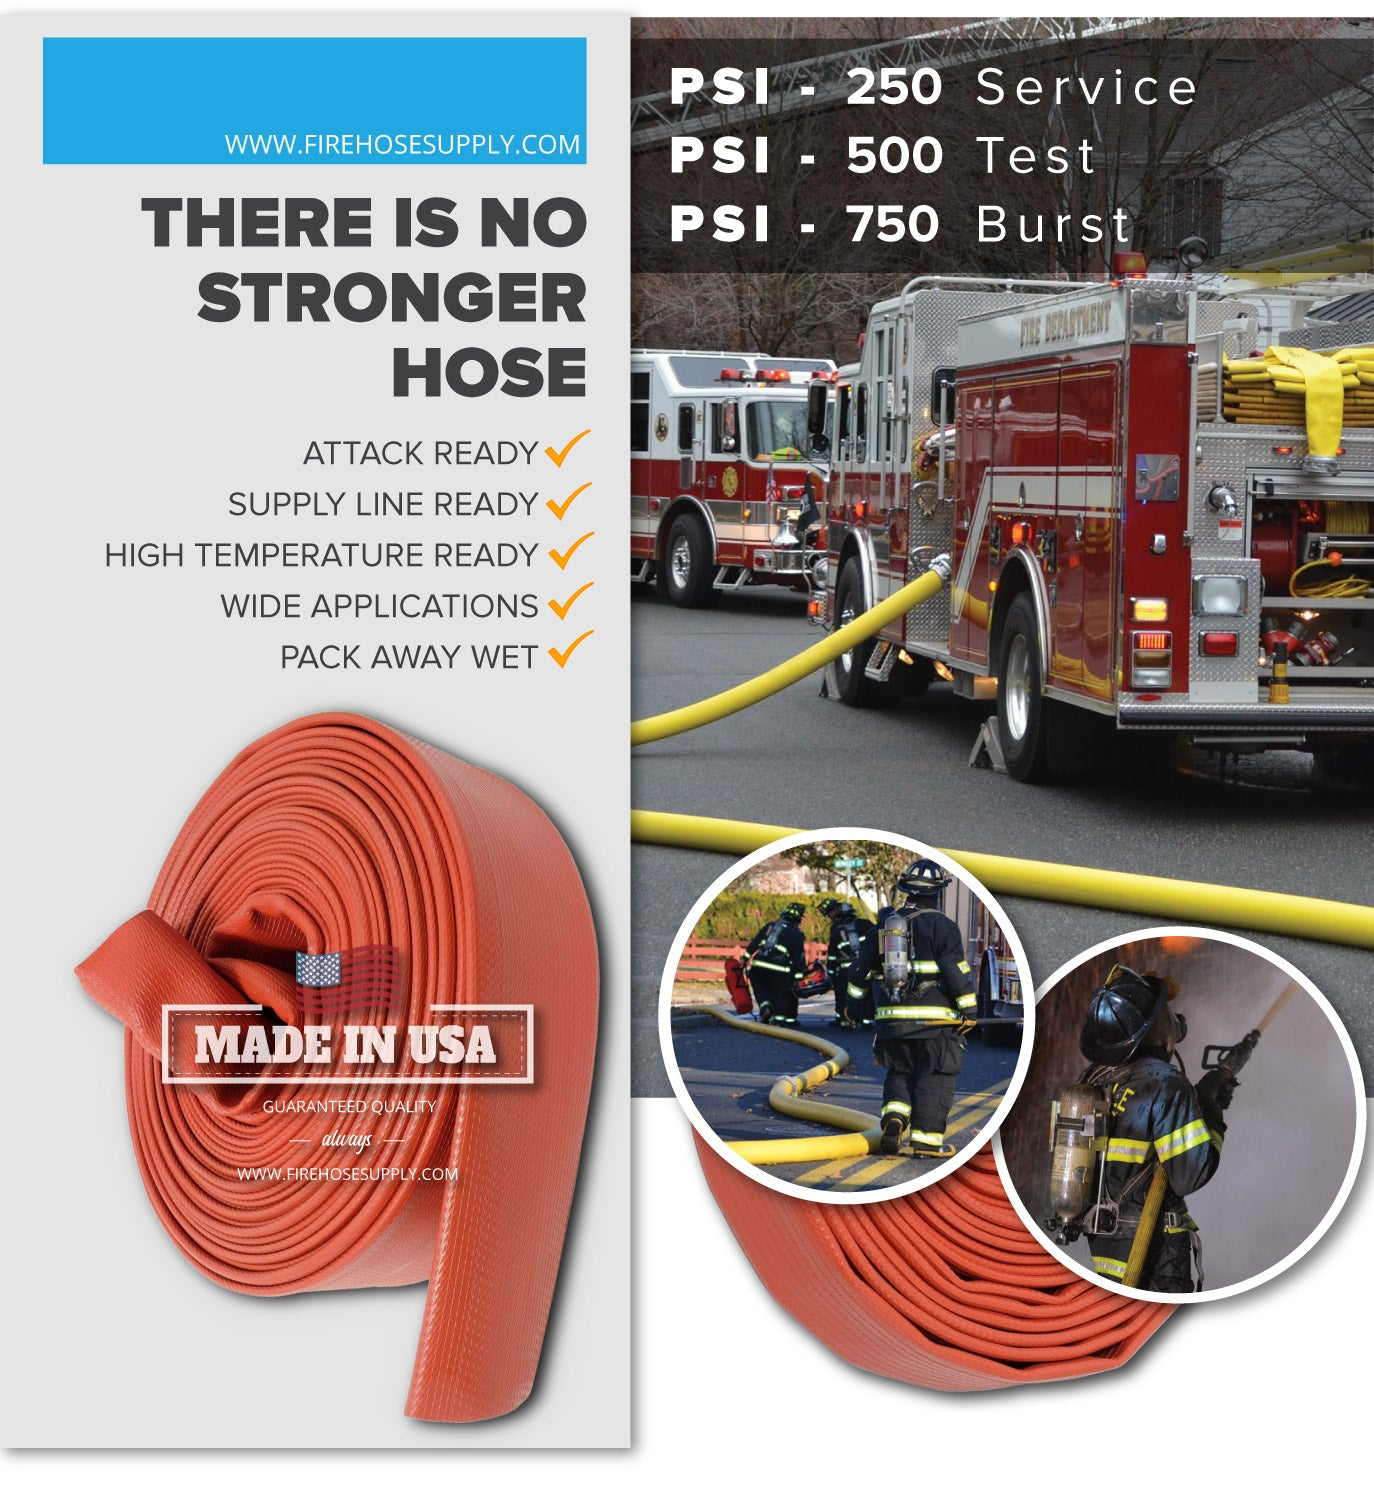 4 Inch Rubber Fire Hose Material Only Supply And Attack Ready Firefighter Red 500 PSI Test